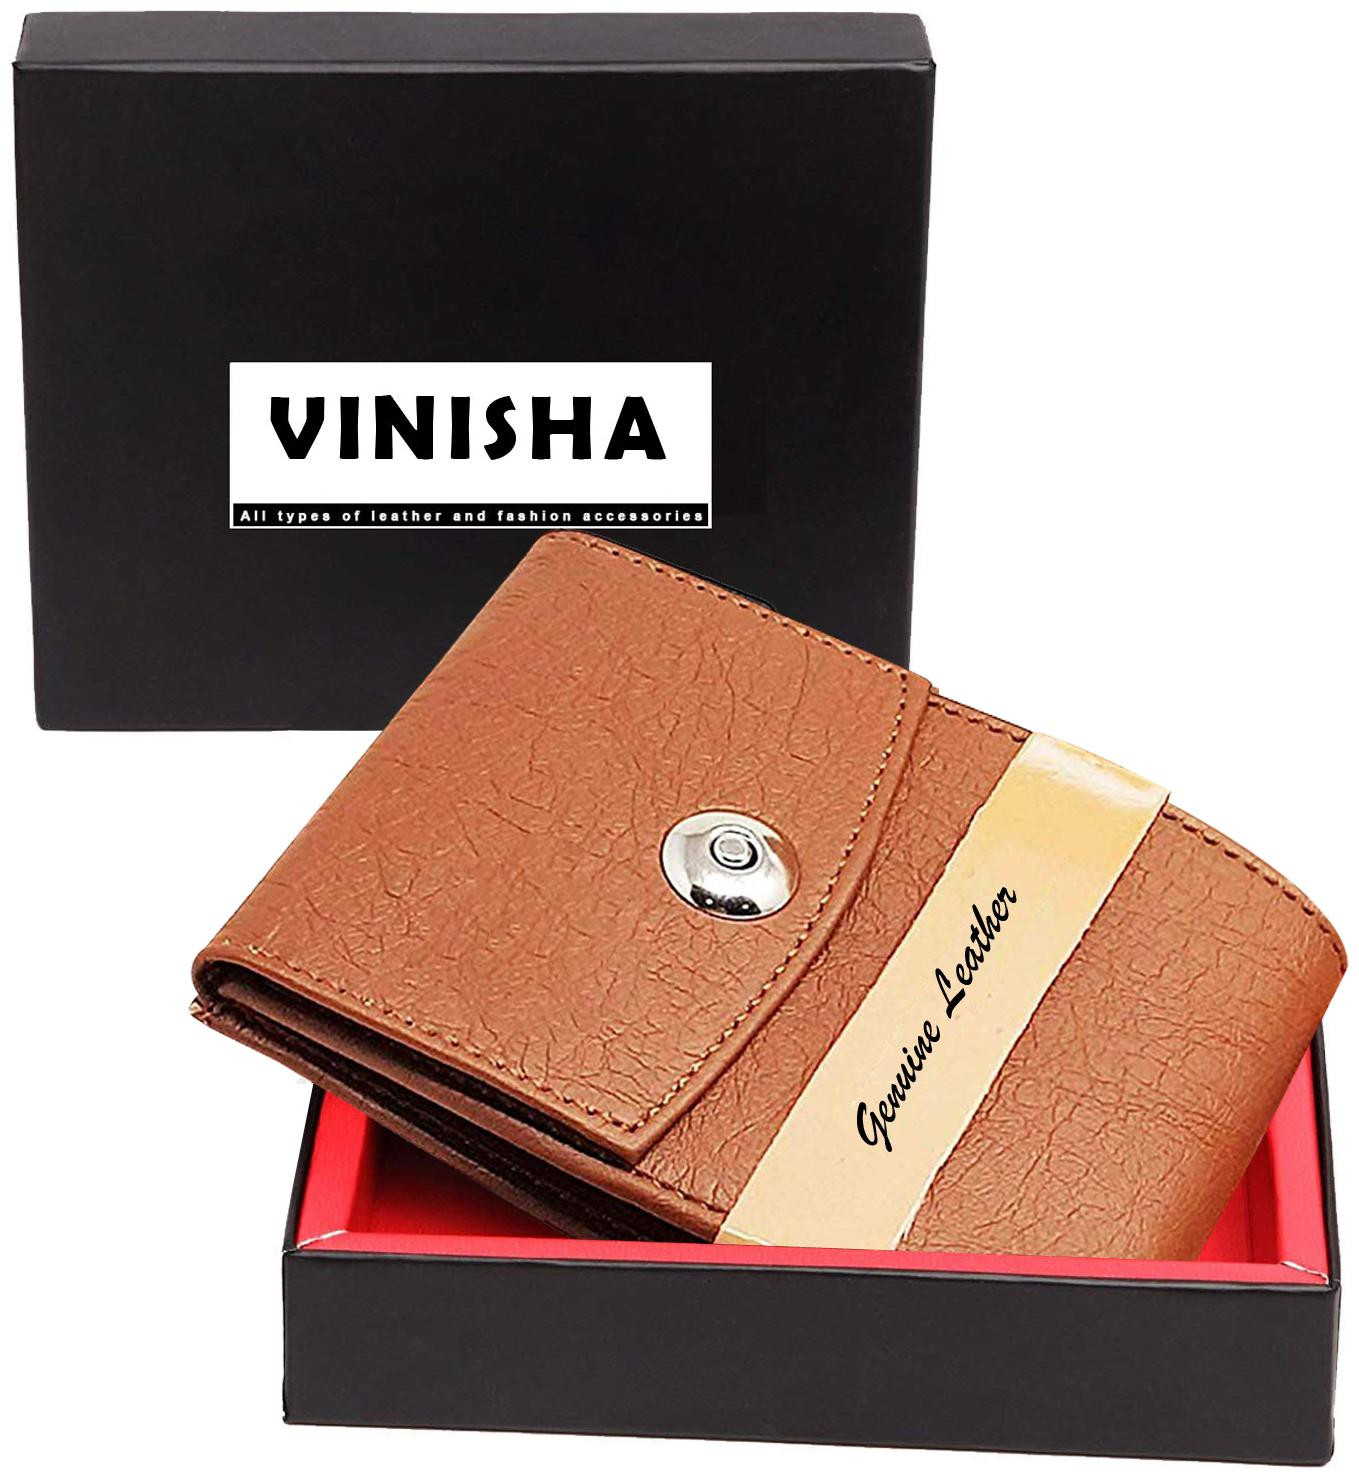 https://assetscdn1.paytm.com/images/catalog/product/A/AC/ACCVINISHA-ENTEVINI9532978C2FFA6B/1587975279755_6.jpg